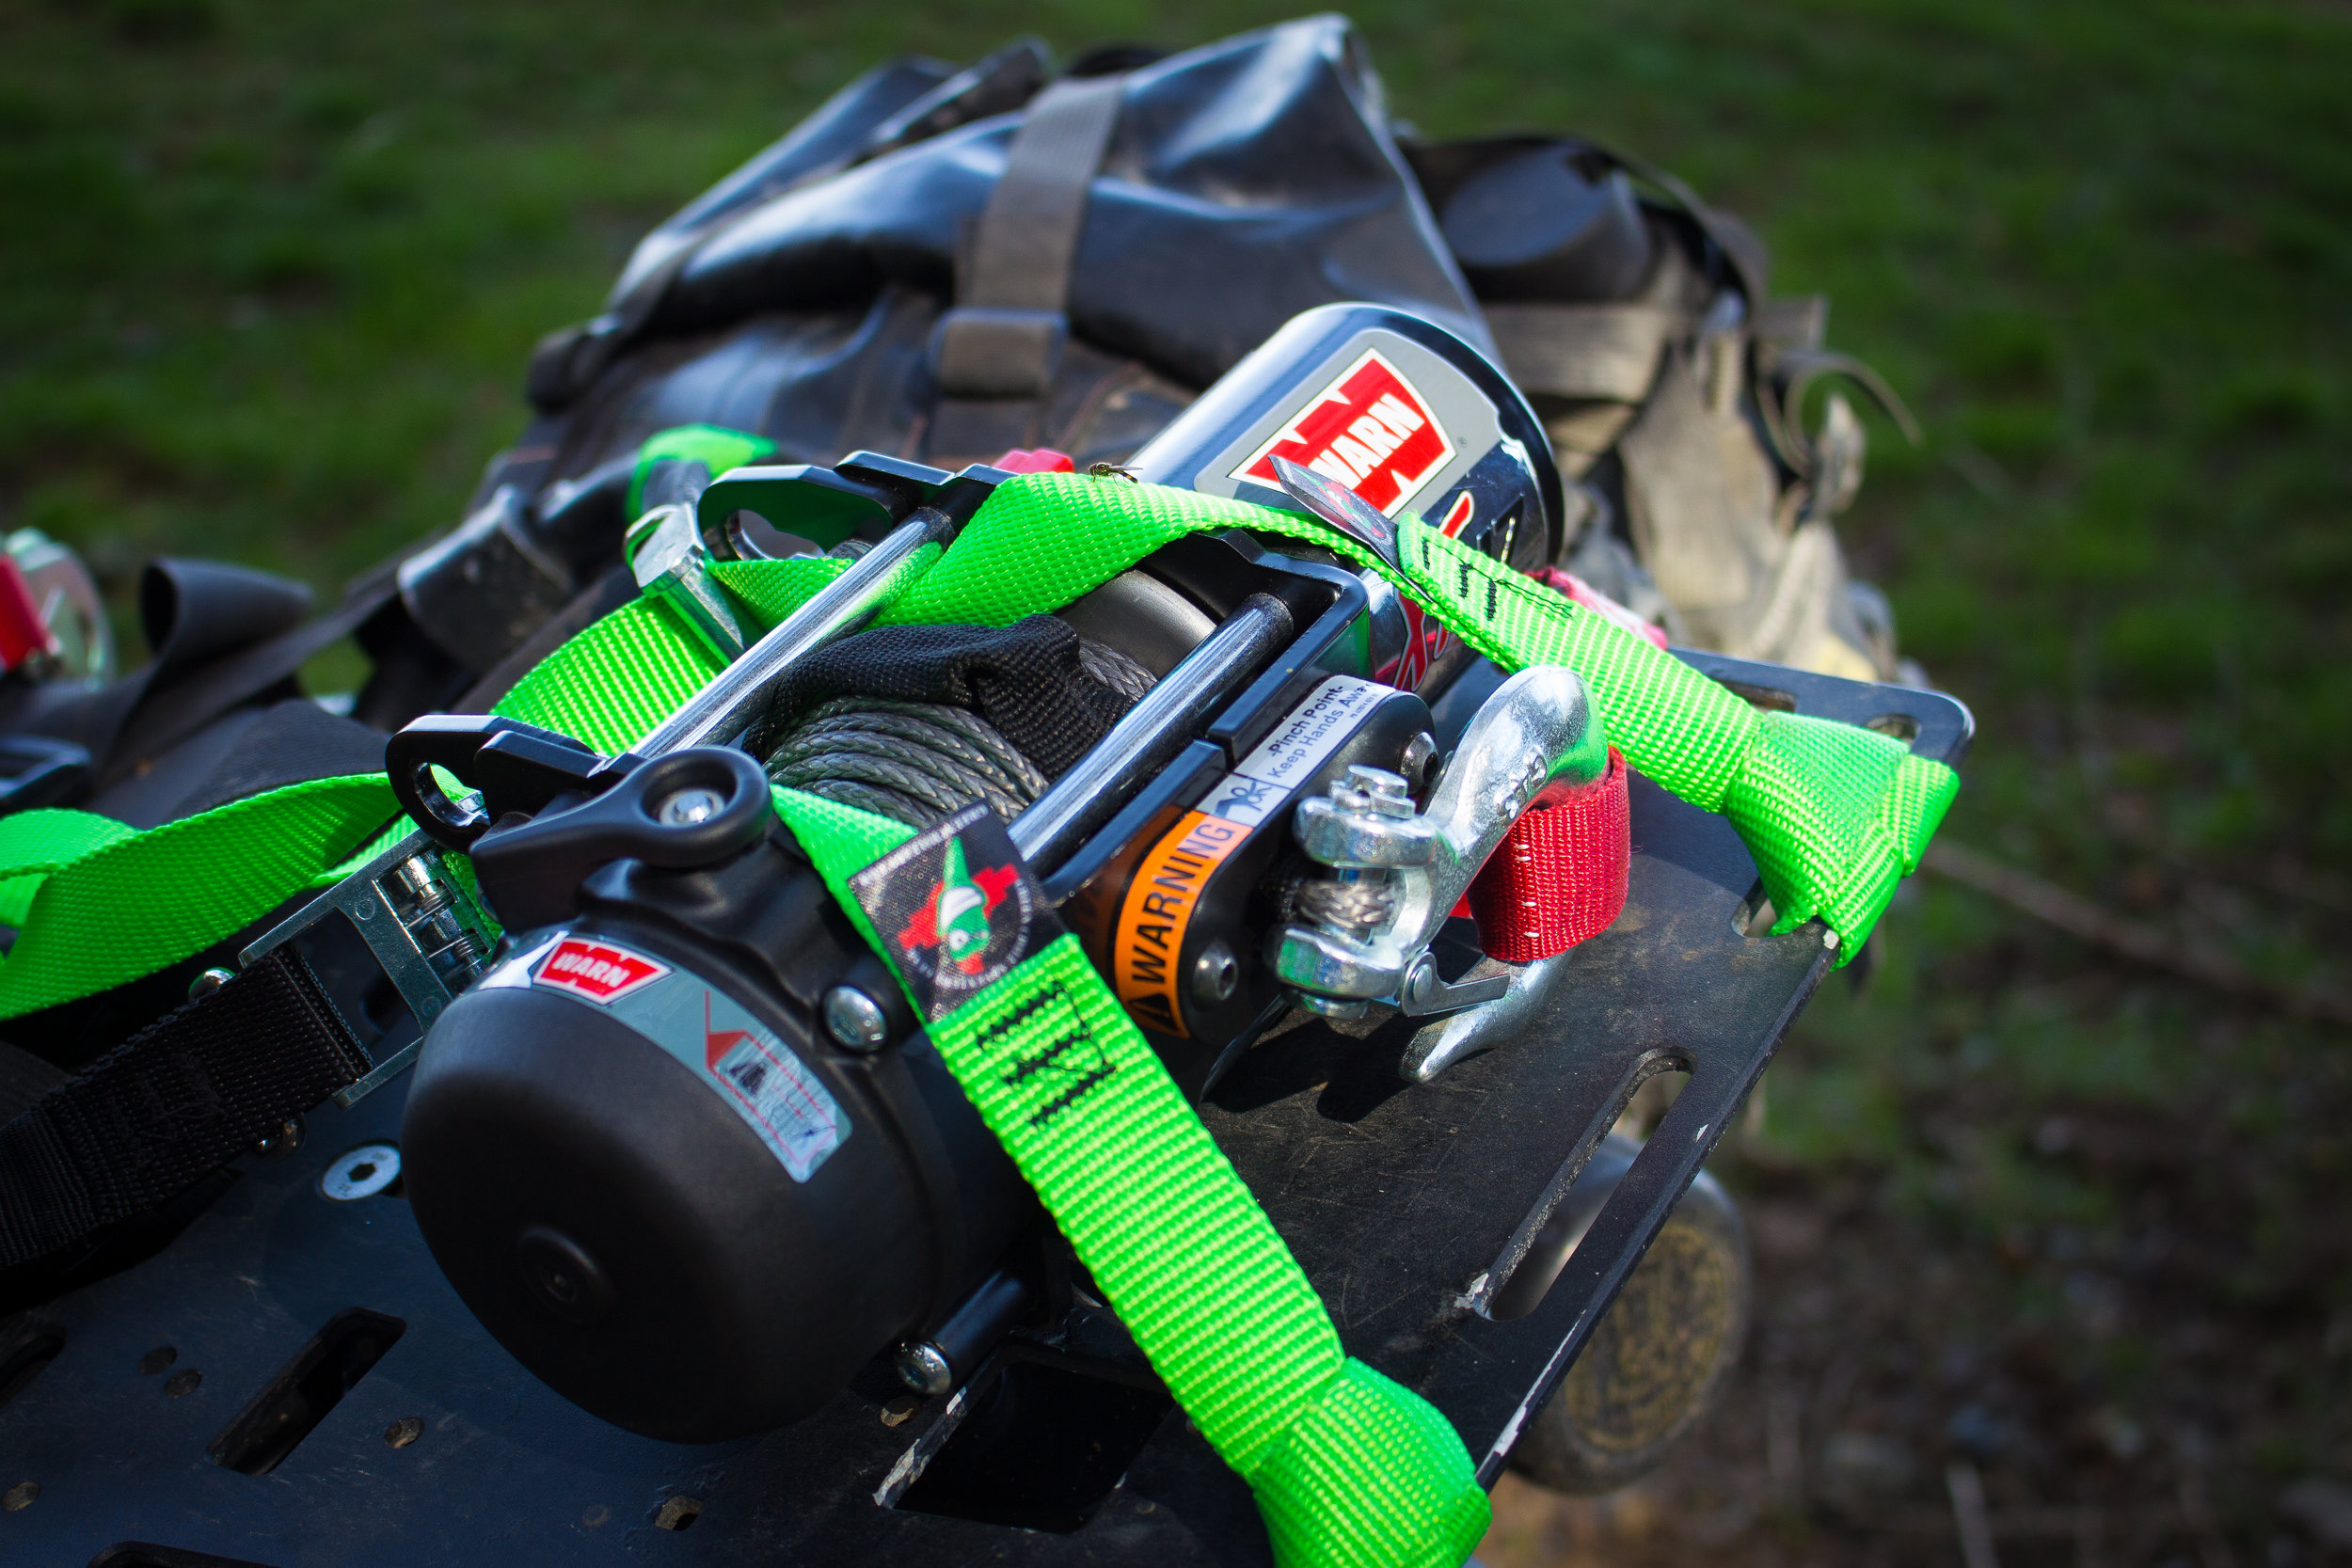 Motorcycle Extraction Gear - Adventure Rider Radio Motorcycle Podcast (1 of 1)-7.jpg